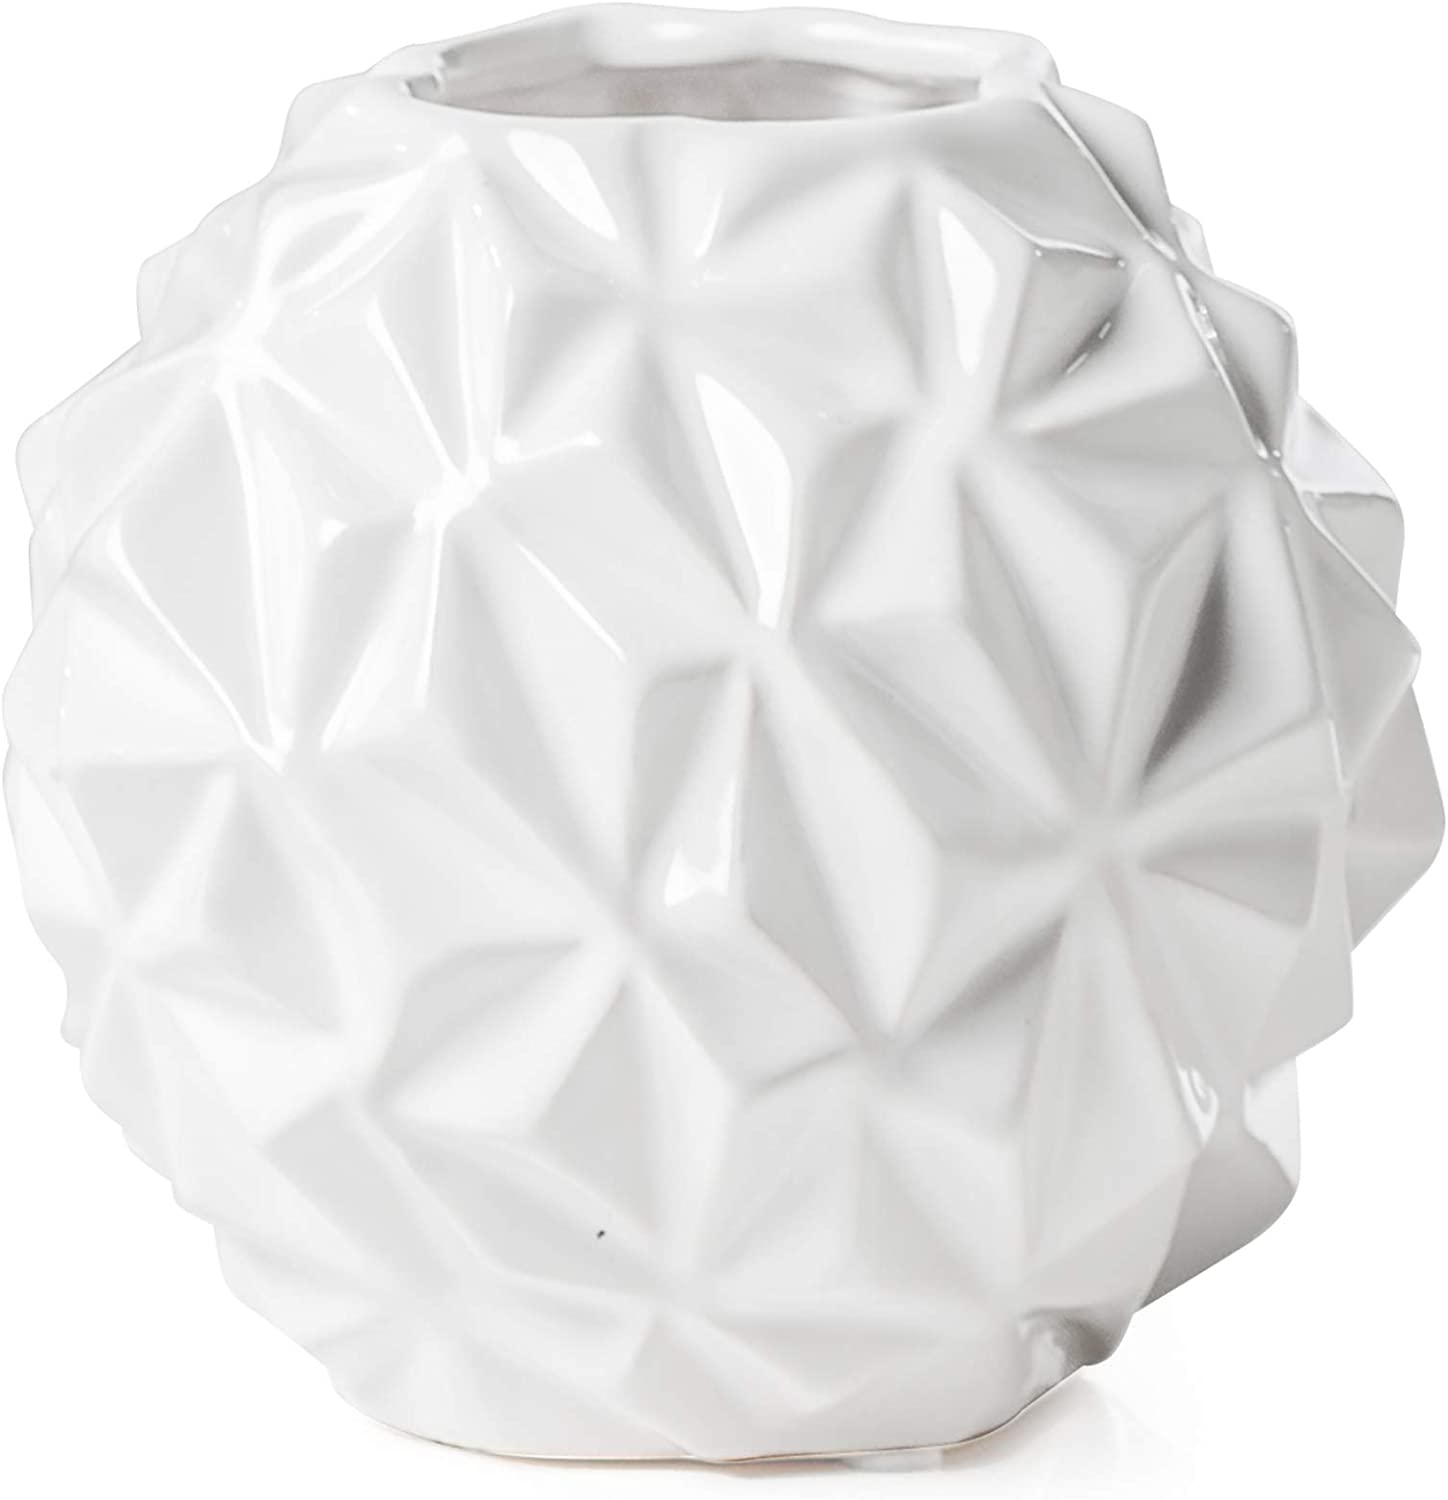 Torre Tagus Crumple Ball White Small National products Vase Portland Mall